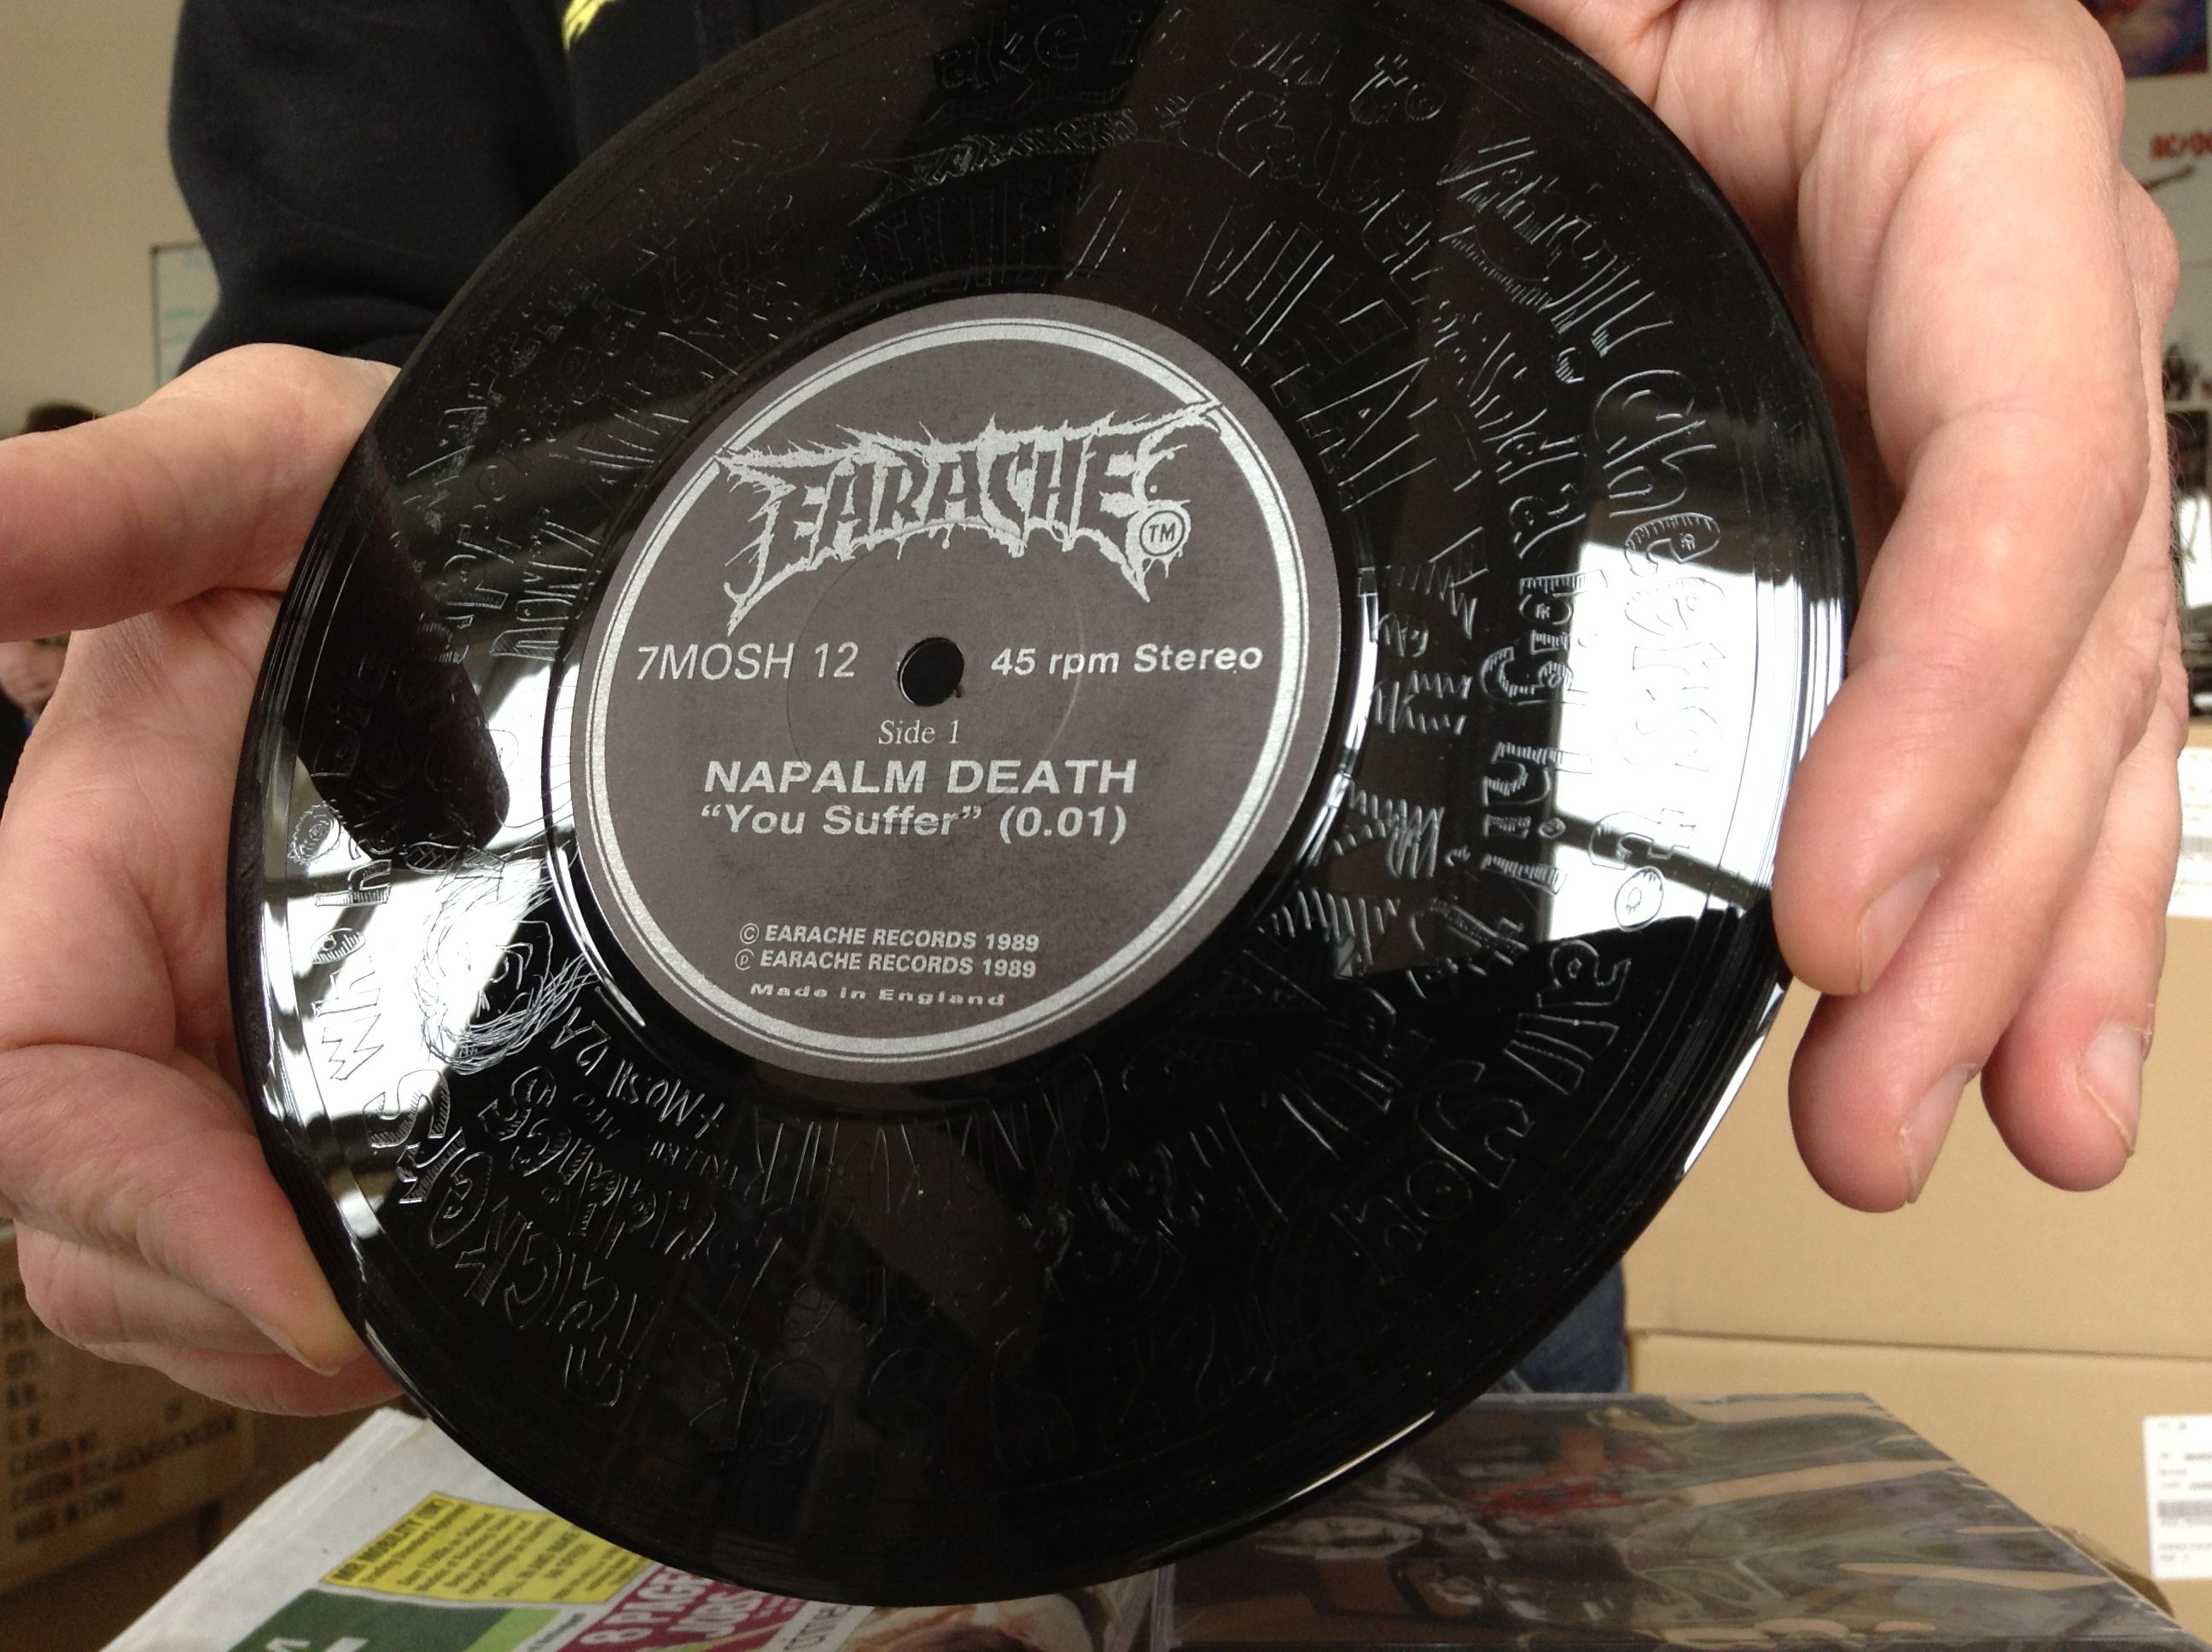 The Limited Edition Napalm Death You Suffer Vinyl With